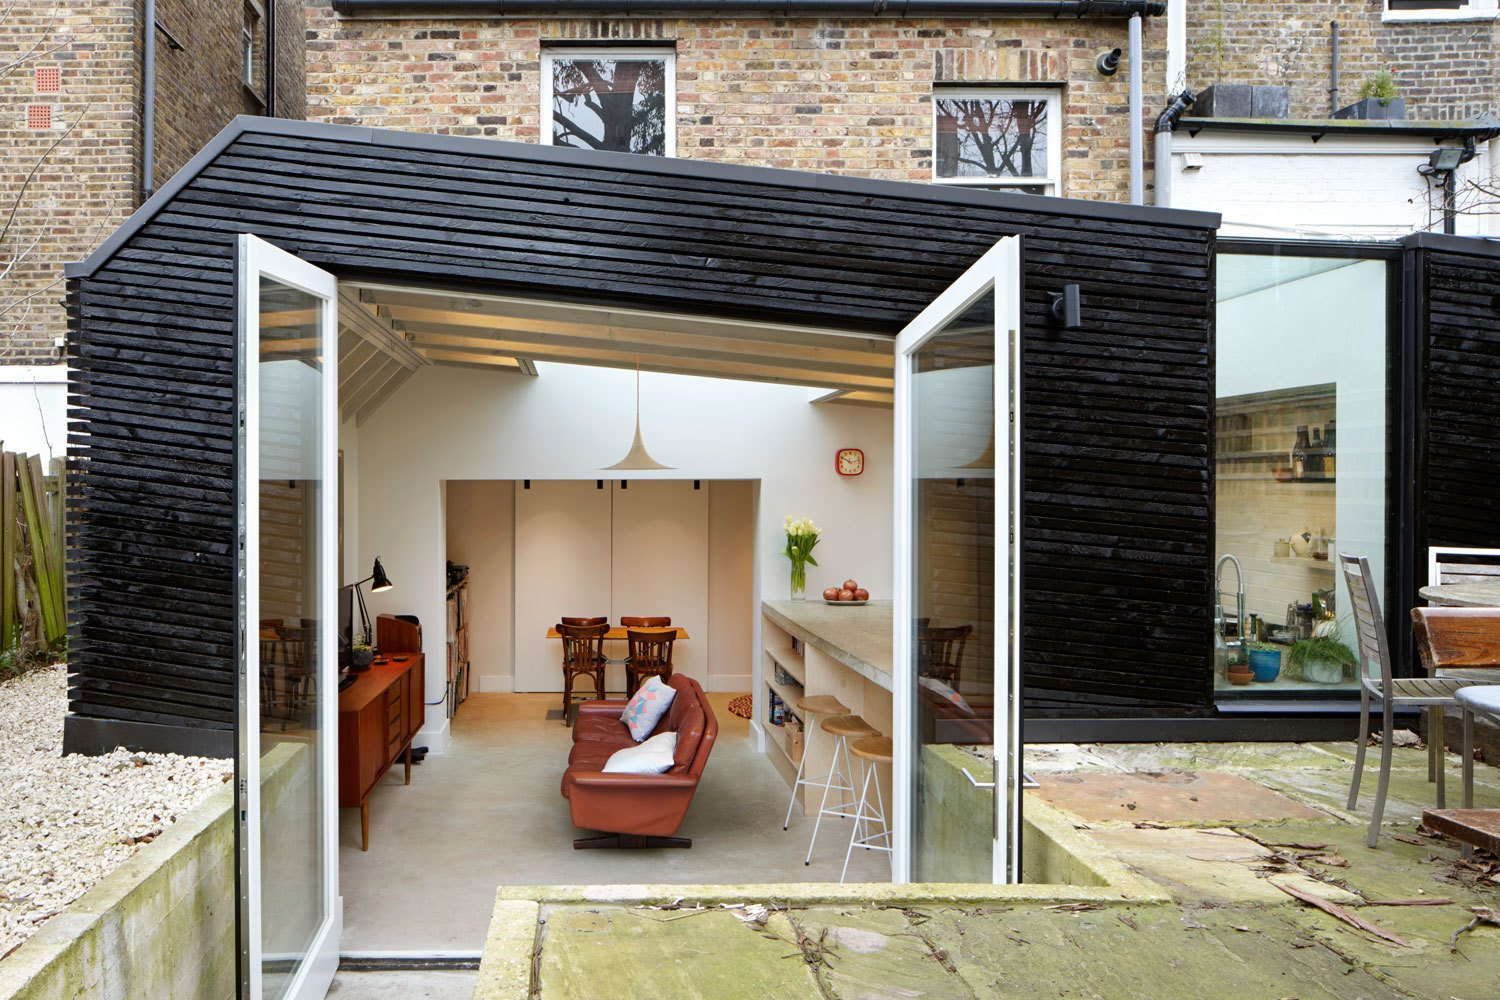 The slightly below-ground kitchen sits inside a boxy extension, clad in recycled timber and stained kettle black. A wildflower garden grows on its pitched roof. Tagged: Doors, Exterior, and Swing Door Type.  A Modern Addition Gives a London Chef a Dream Kitchen by Laura C. Mallonee from Unexpected Additions in London